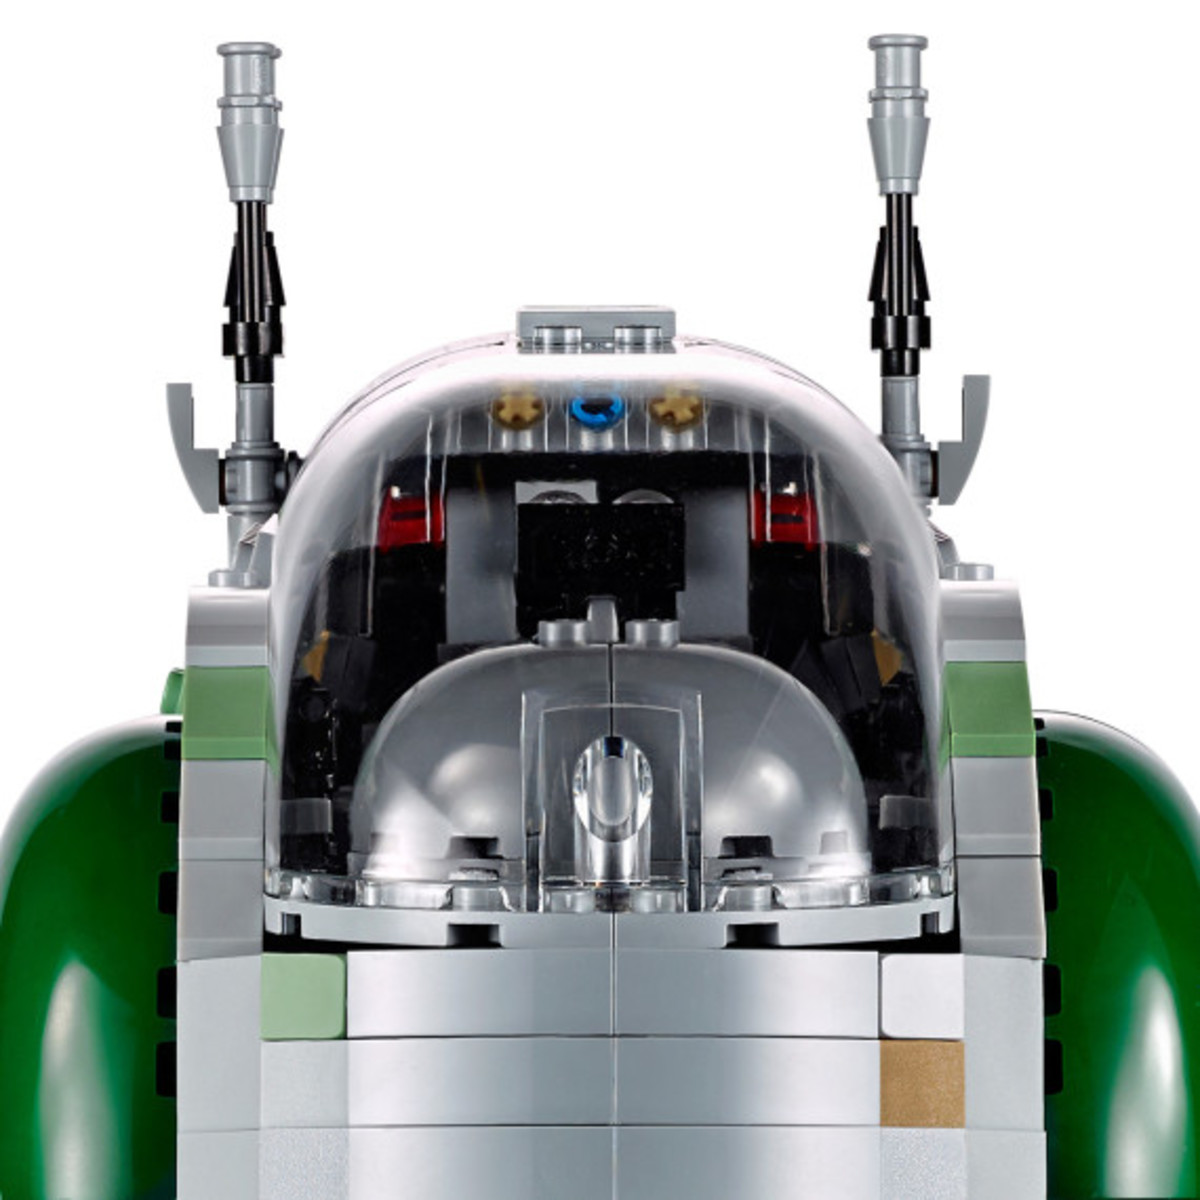 Star Wars x LEGO Ultimate Collector's Series: Boba Fett's Slave I Kit | Release Info - 6